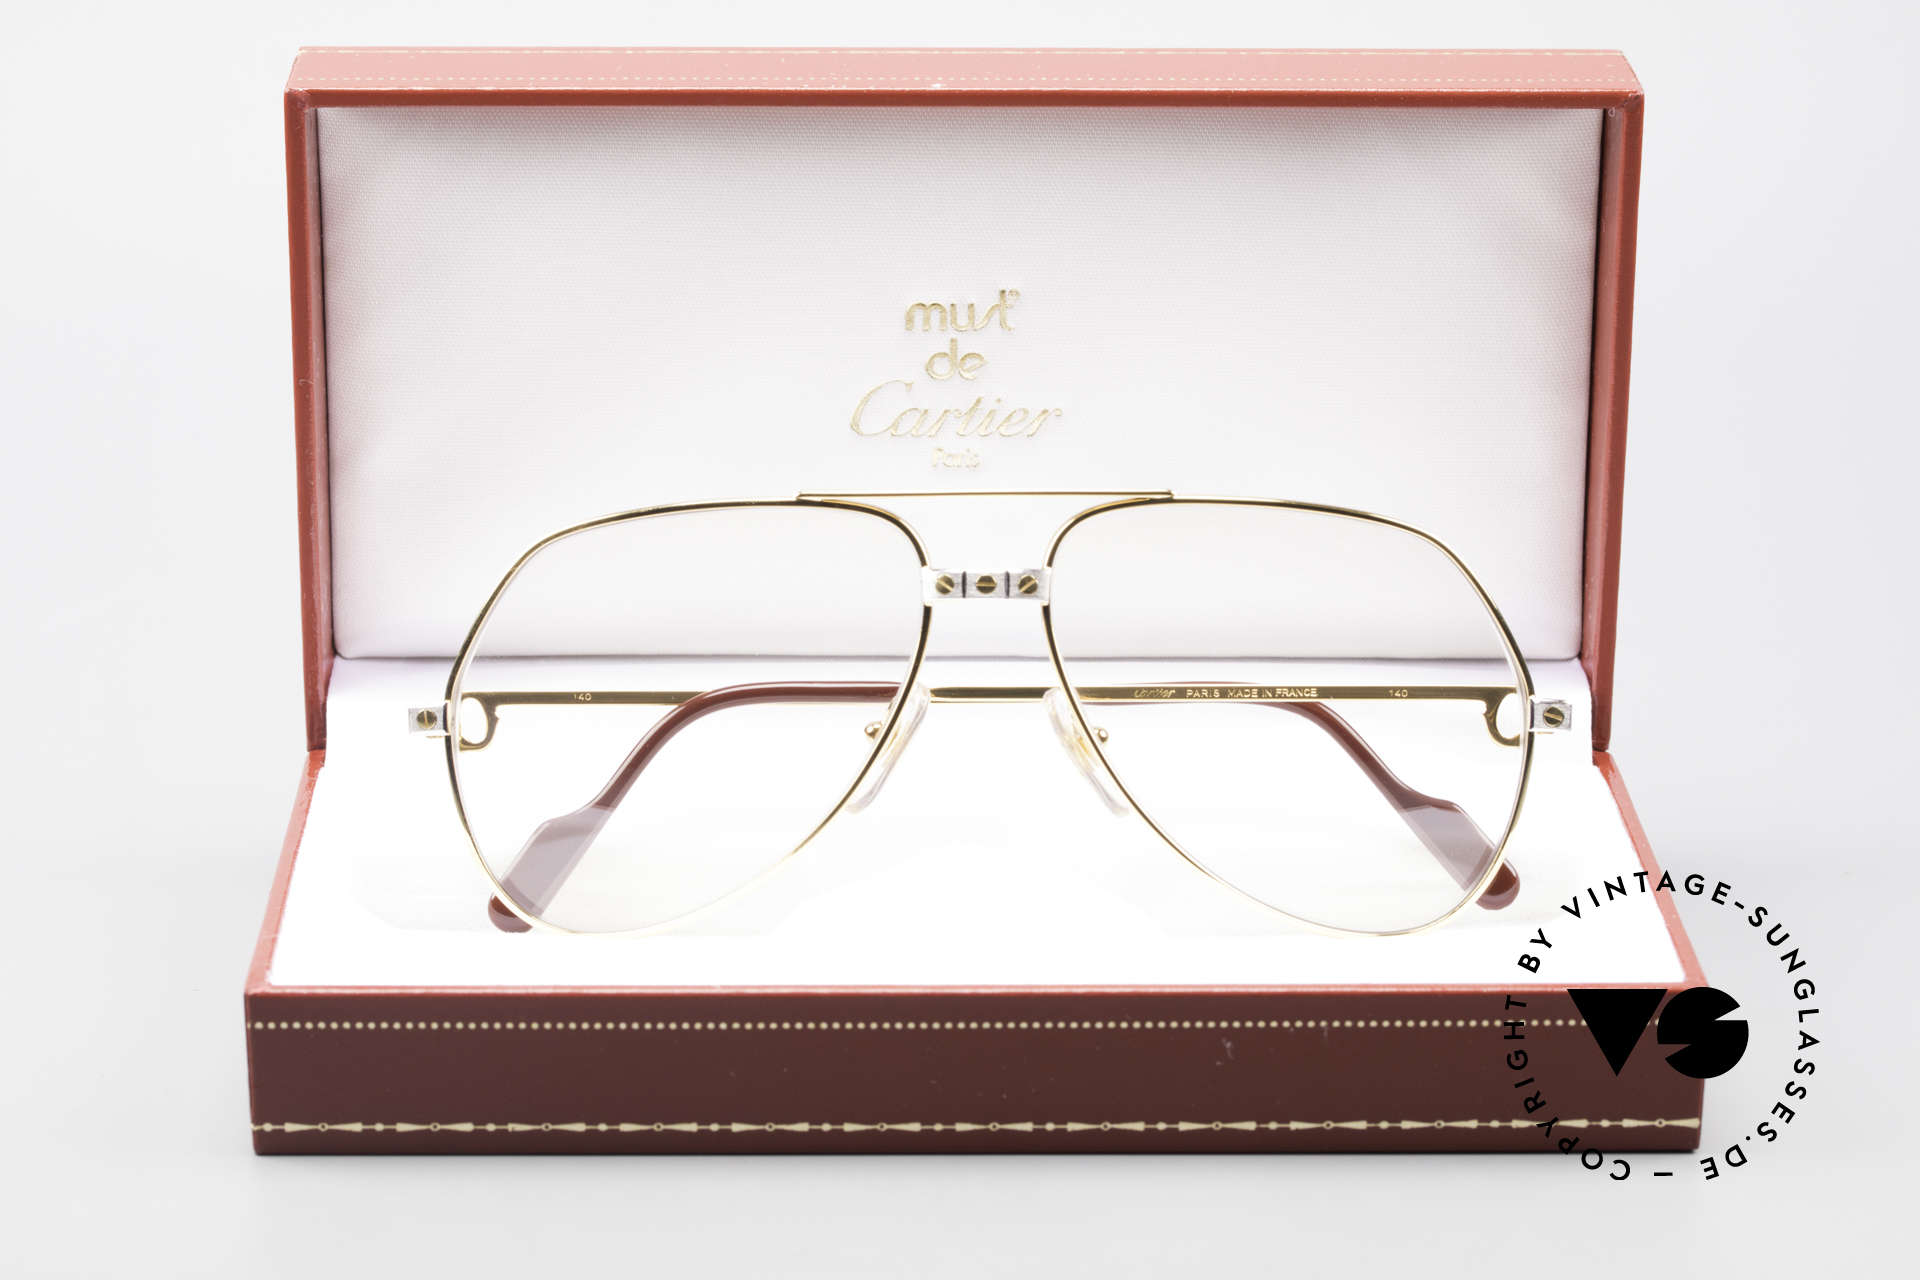 Cartier Vendome Santos - M Changeable Cartier Lenses, unworn, new old stock (NOS), with full original packing, Made for Men